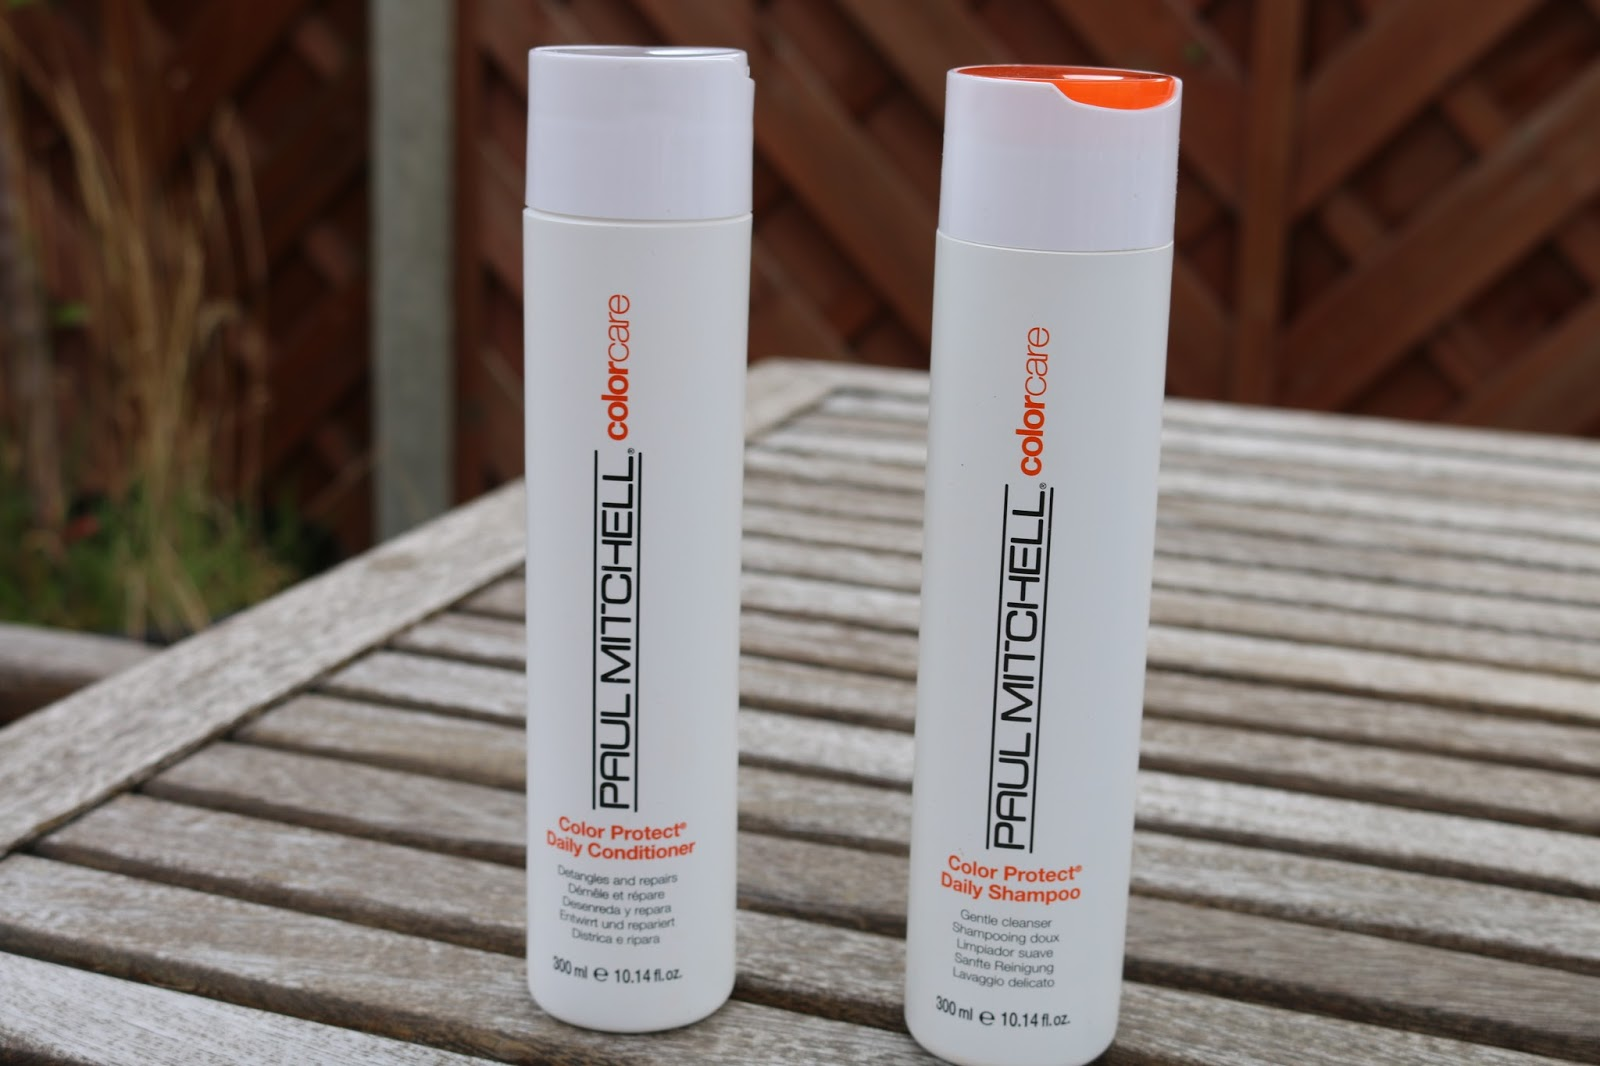 Paul Mitchell Color Care Protect Daily Shampoo & Colour Care Protect Daily Conditioner